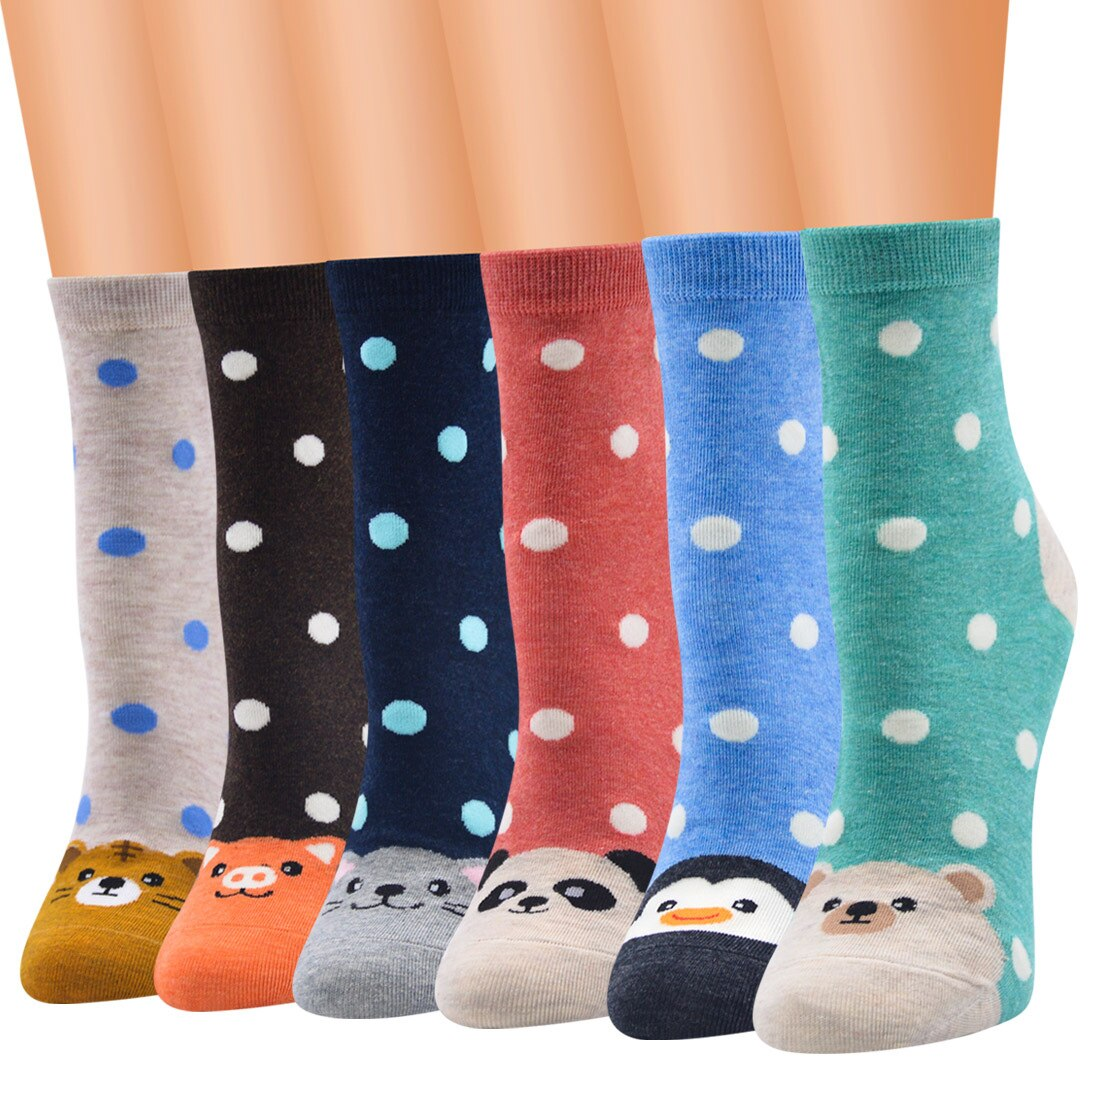 Combed Cotton Low Tube Ankle Size Korean Style Polka Dot Animal Cartoon Socks For Women